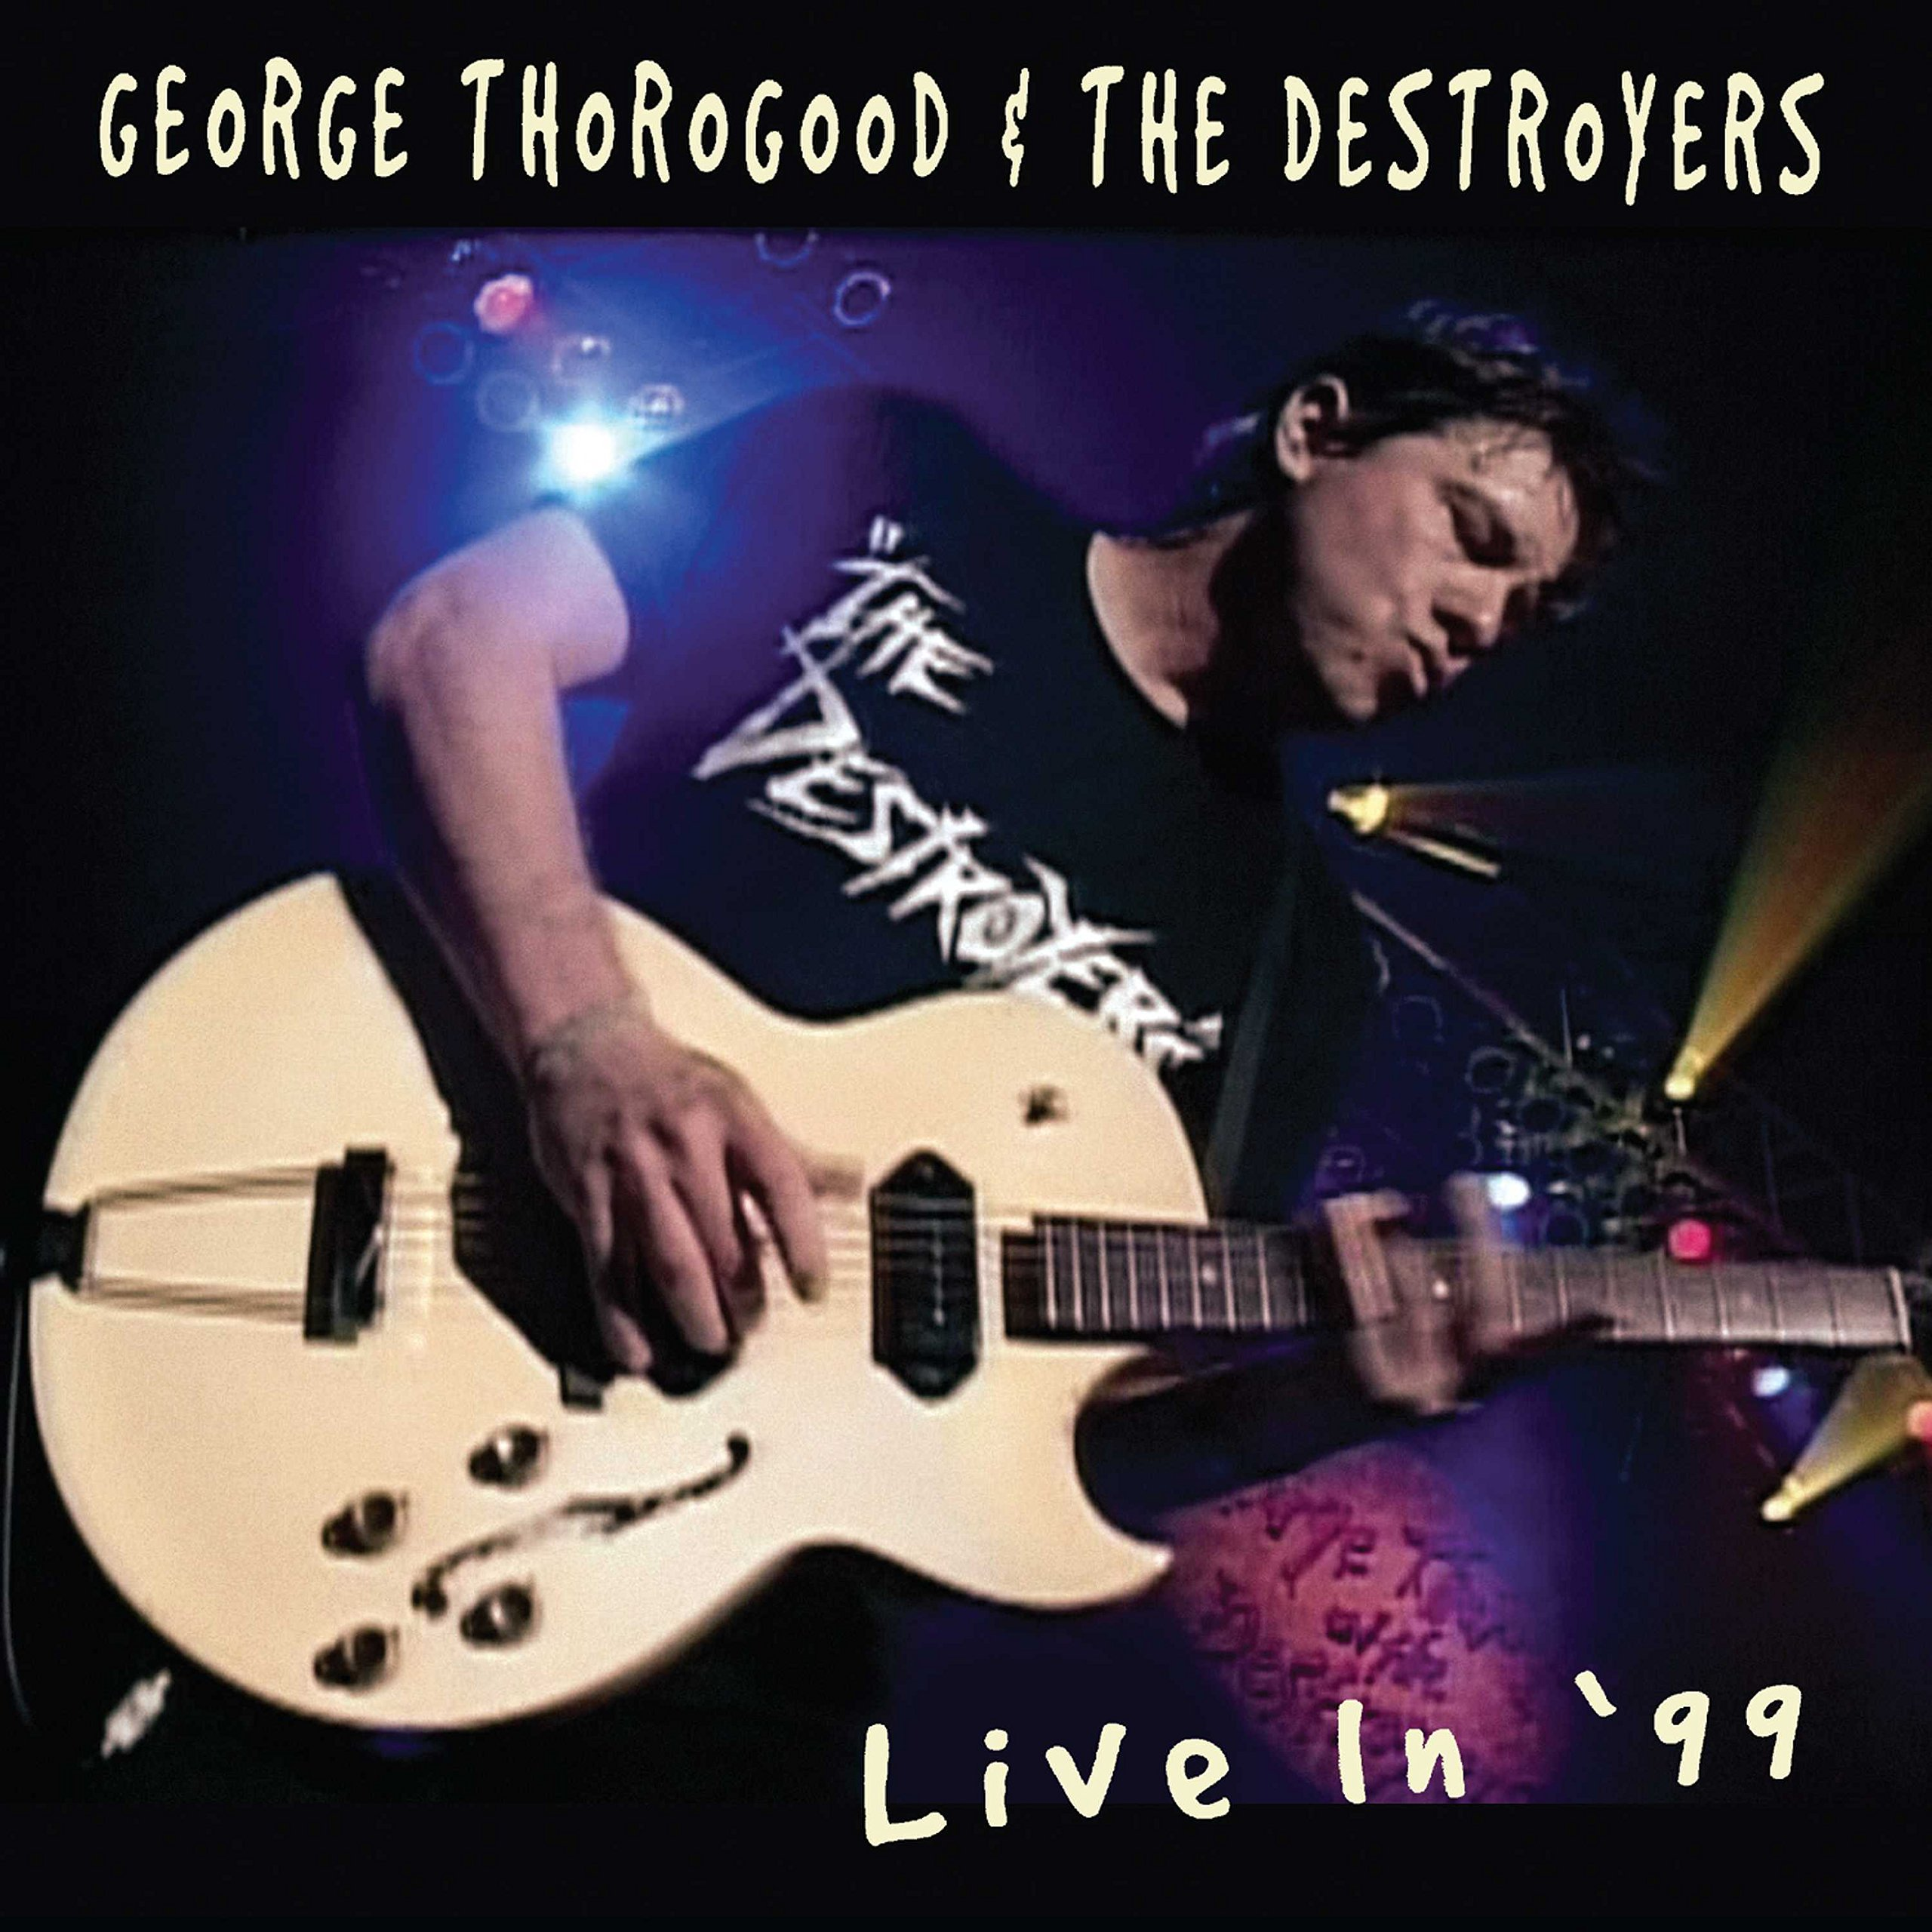 CD : George Thorogood & Destroyers - Live In 99 (Reissue)